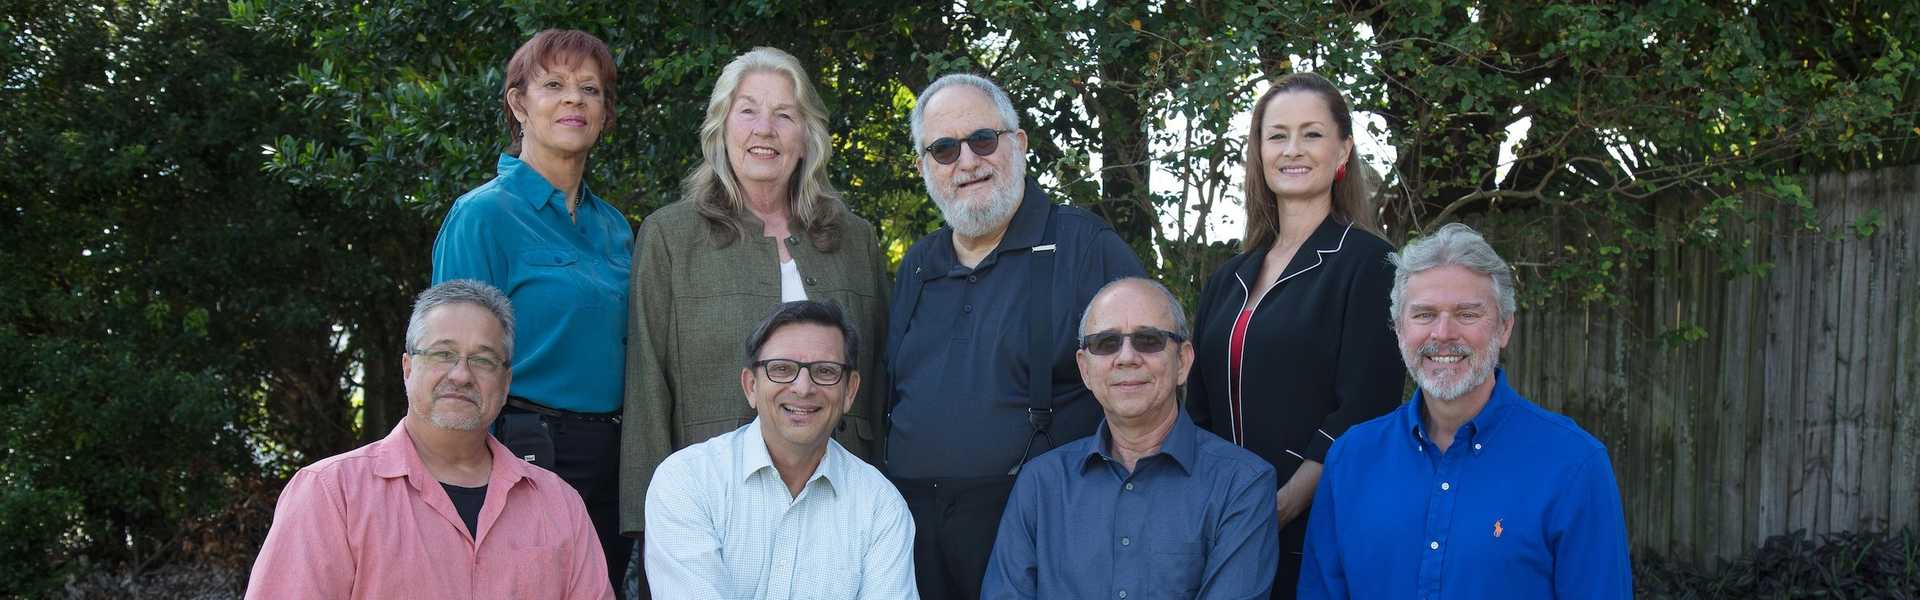 Central Florida Musicians' Association The Board of Directors in Front of Building